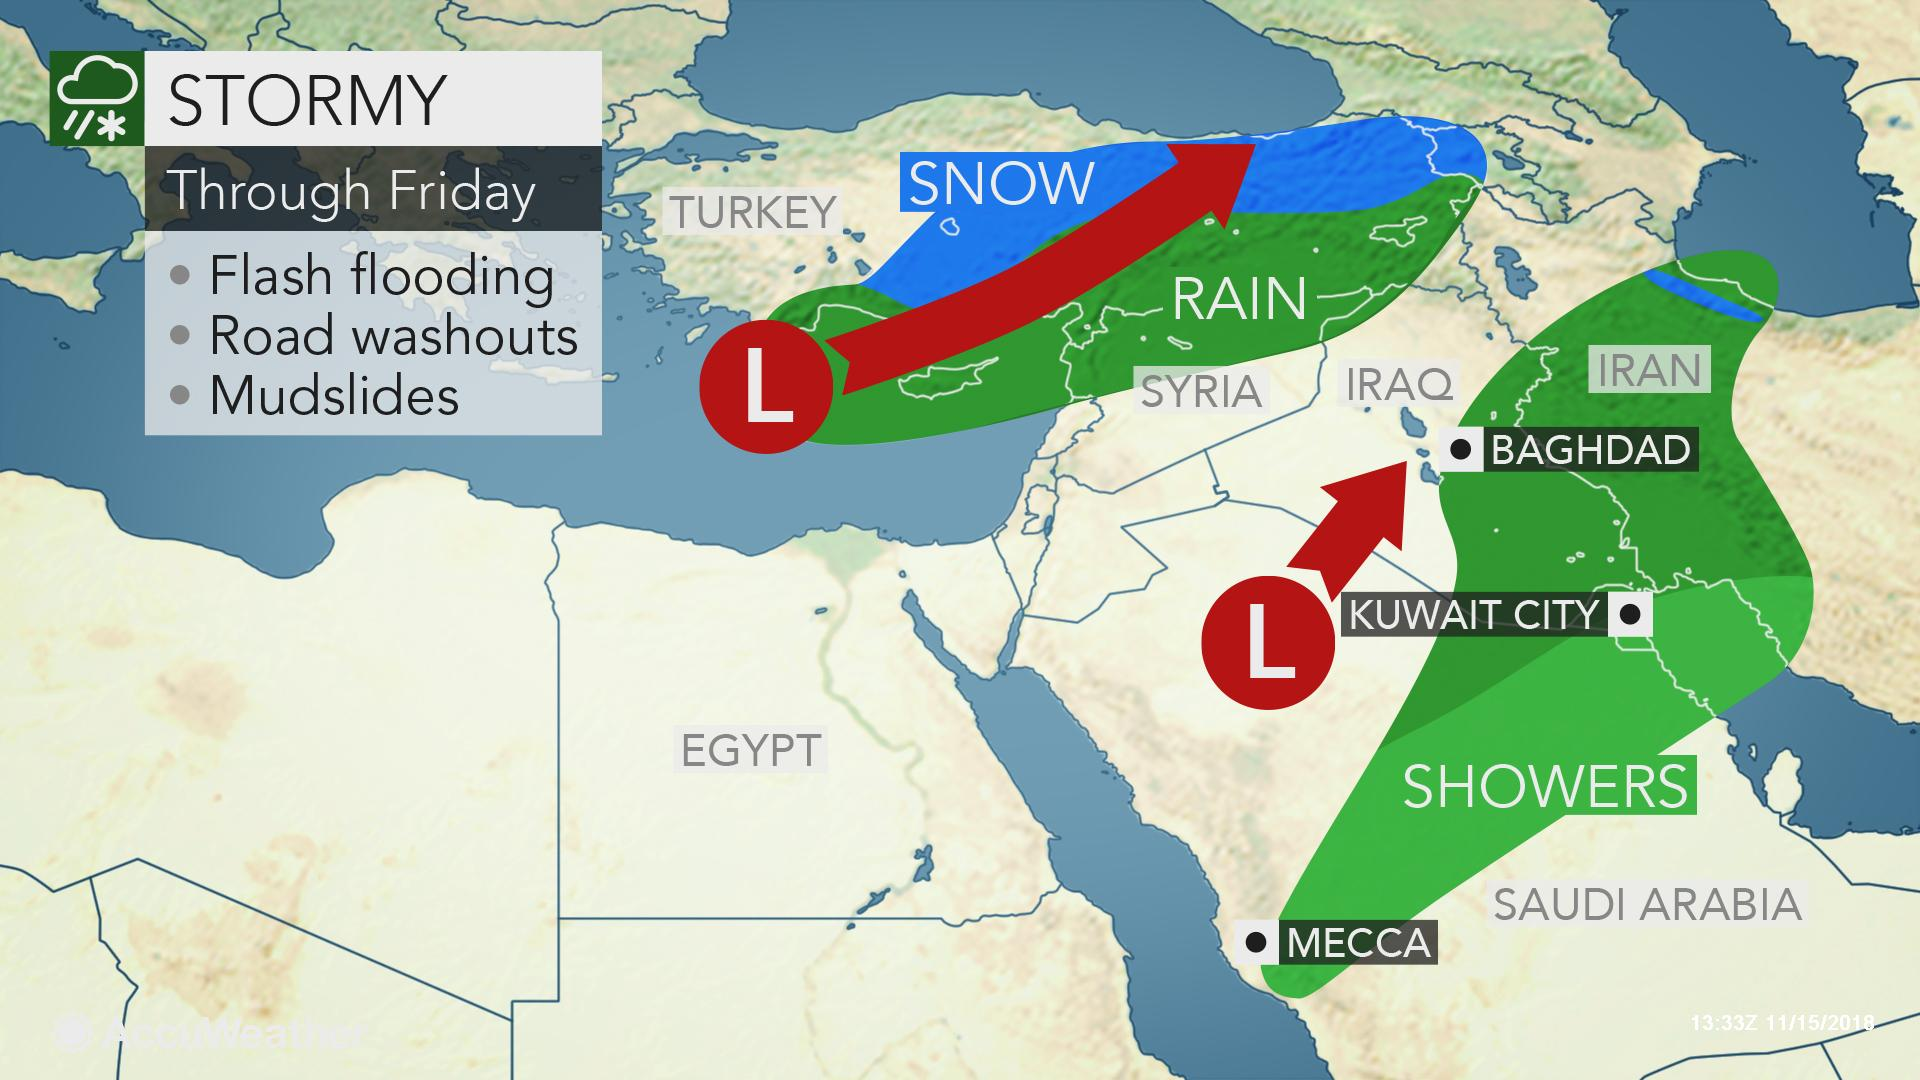 Close to year's worth of rain inundates Kuwait City with